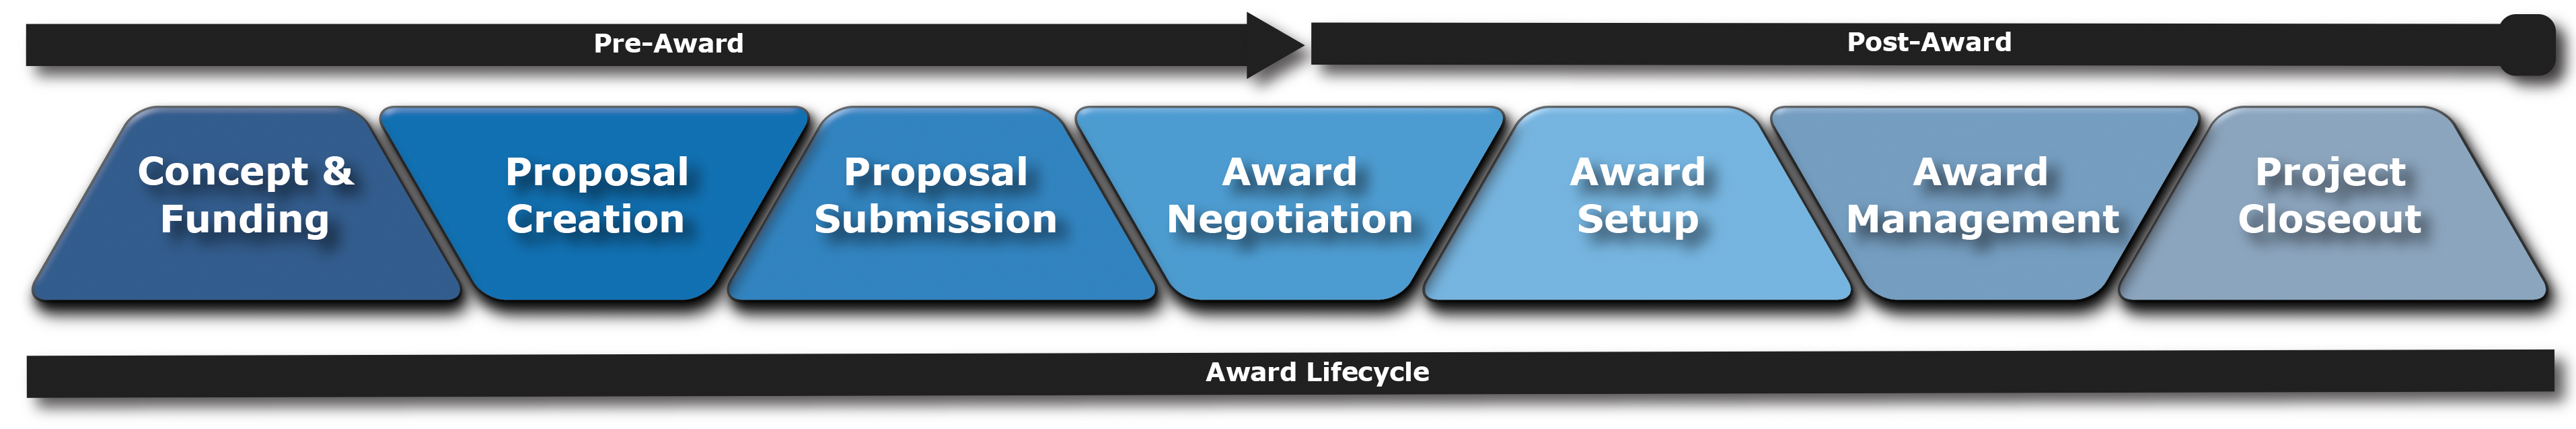 Award Lifecycle | UNC Research